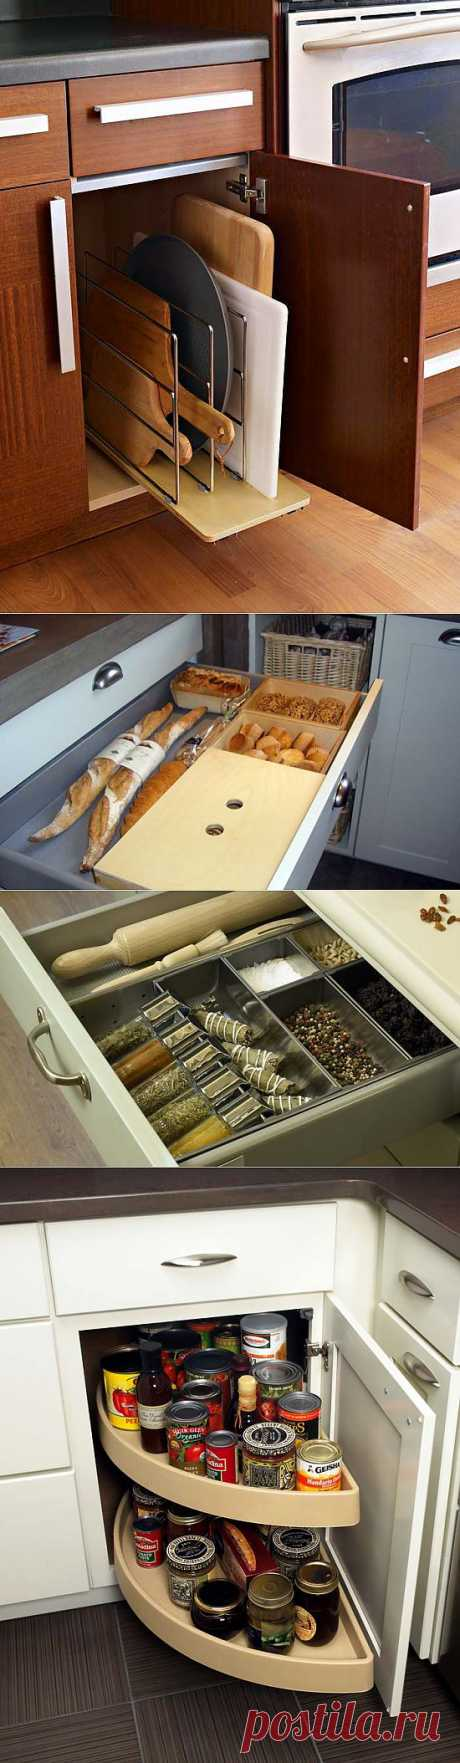 The organization of storage in kitchen | Photos of beautiful interiors